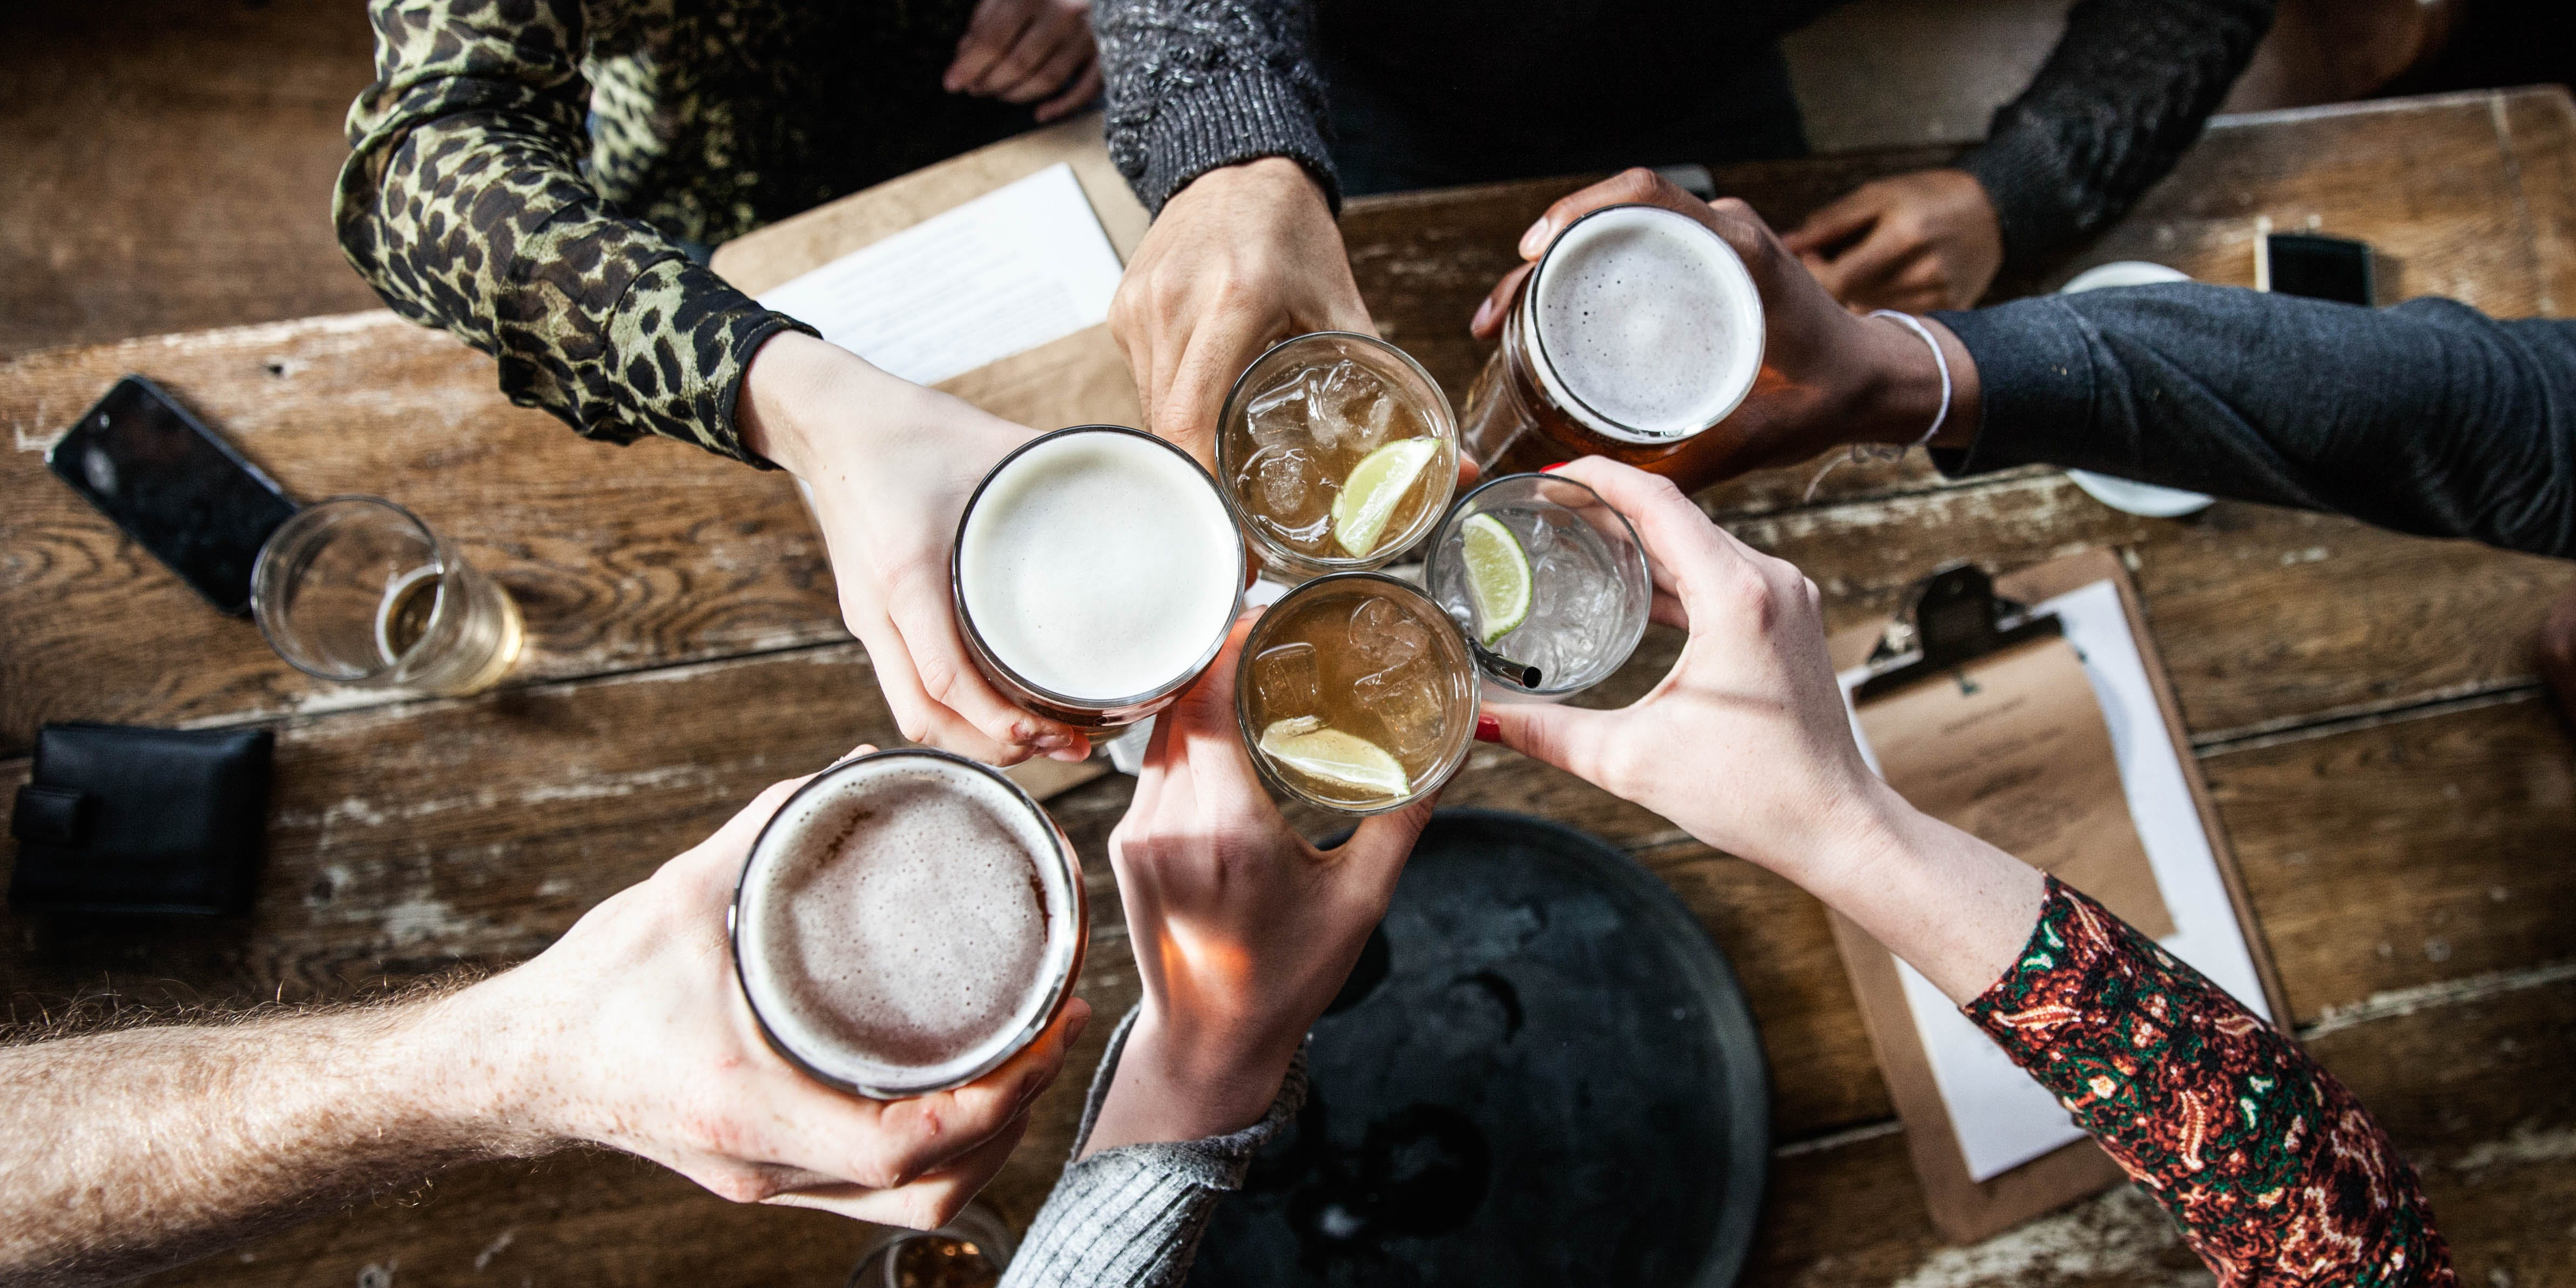 Coors Becomes the Latest Alcohol Company to Enter the Cannabis Industry. Here, friends are seen toasting with beers on tap